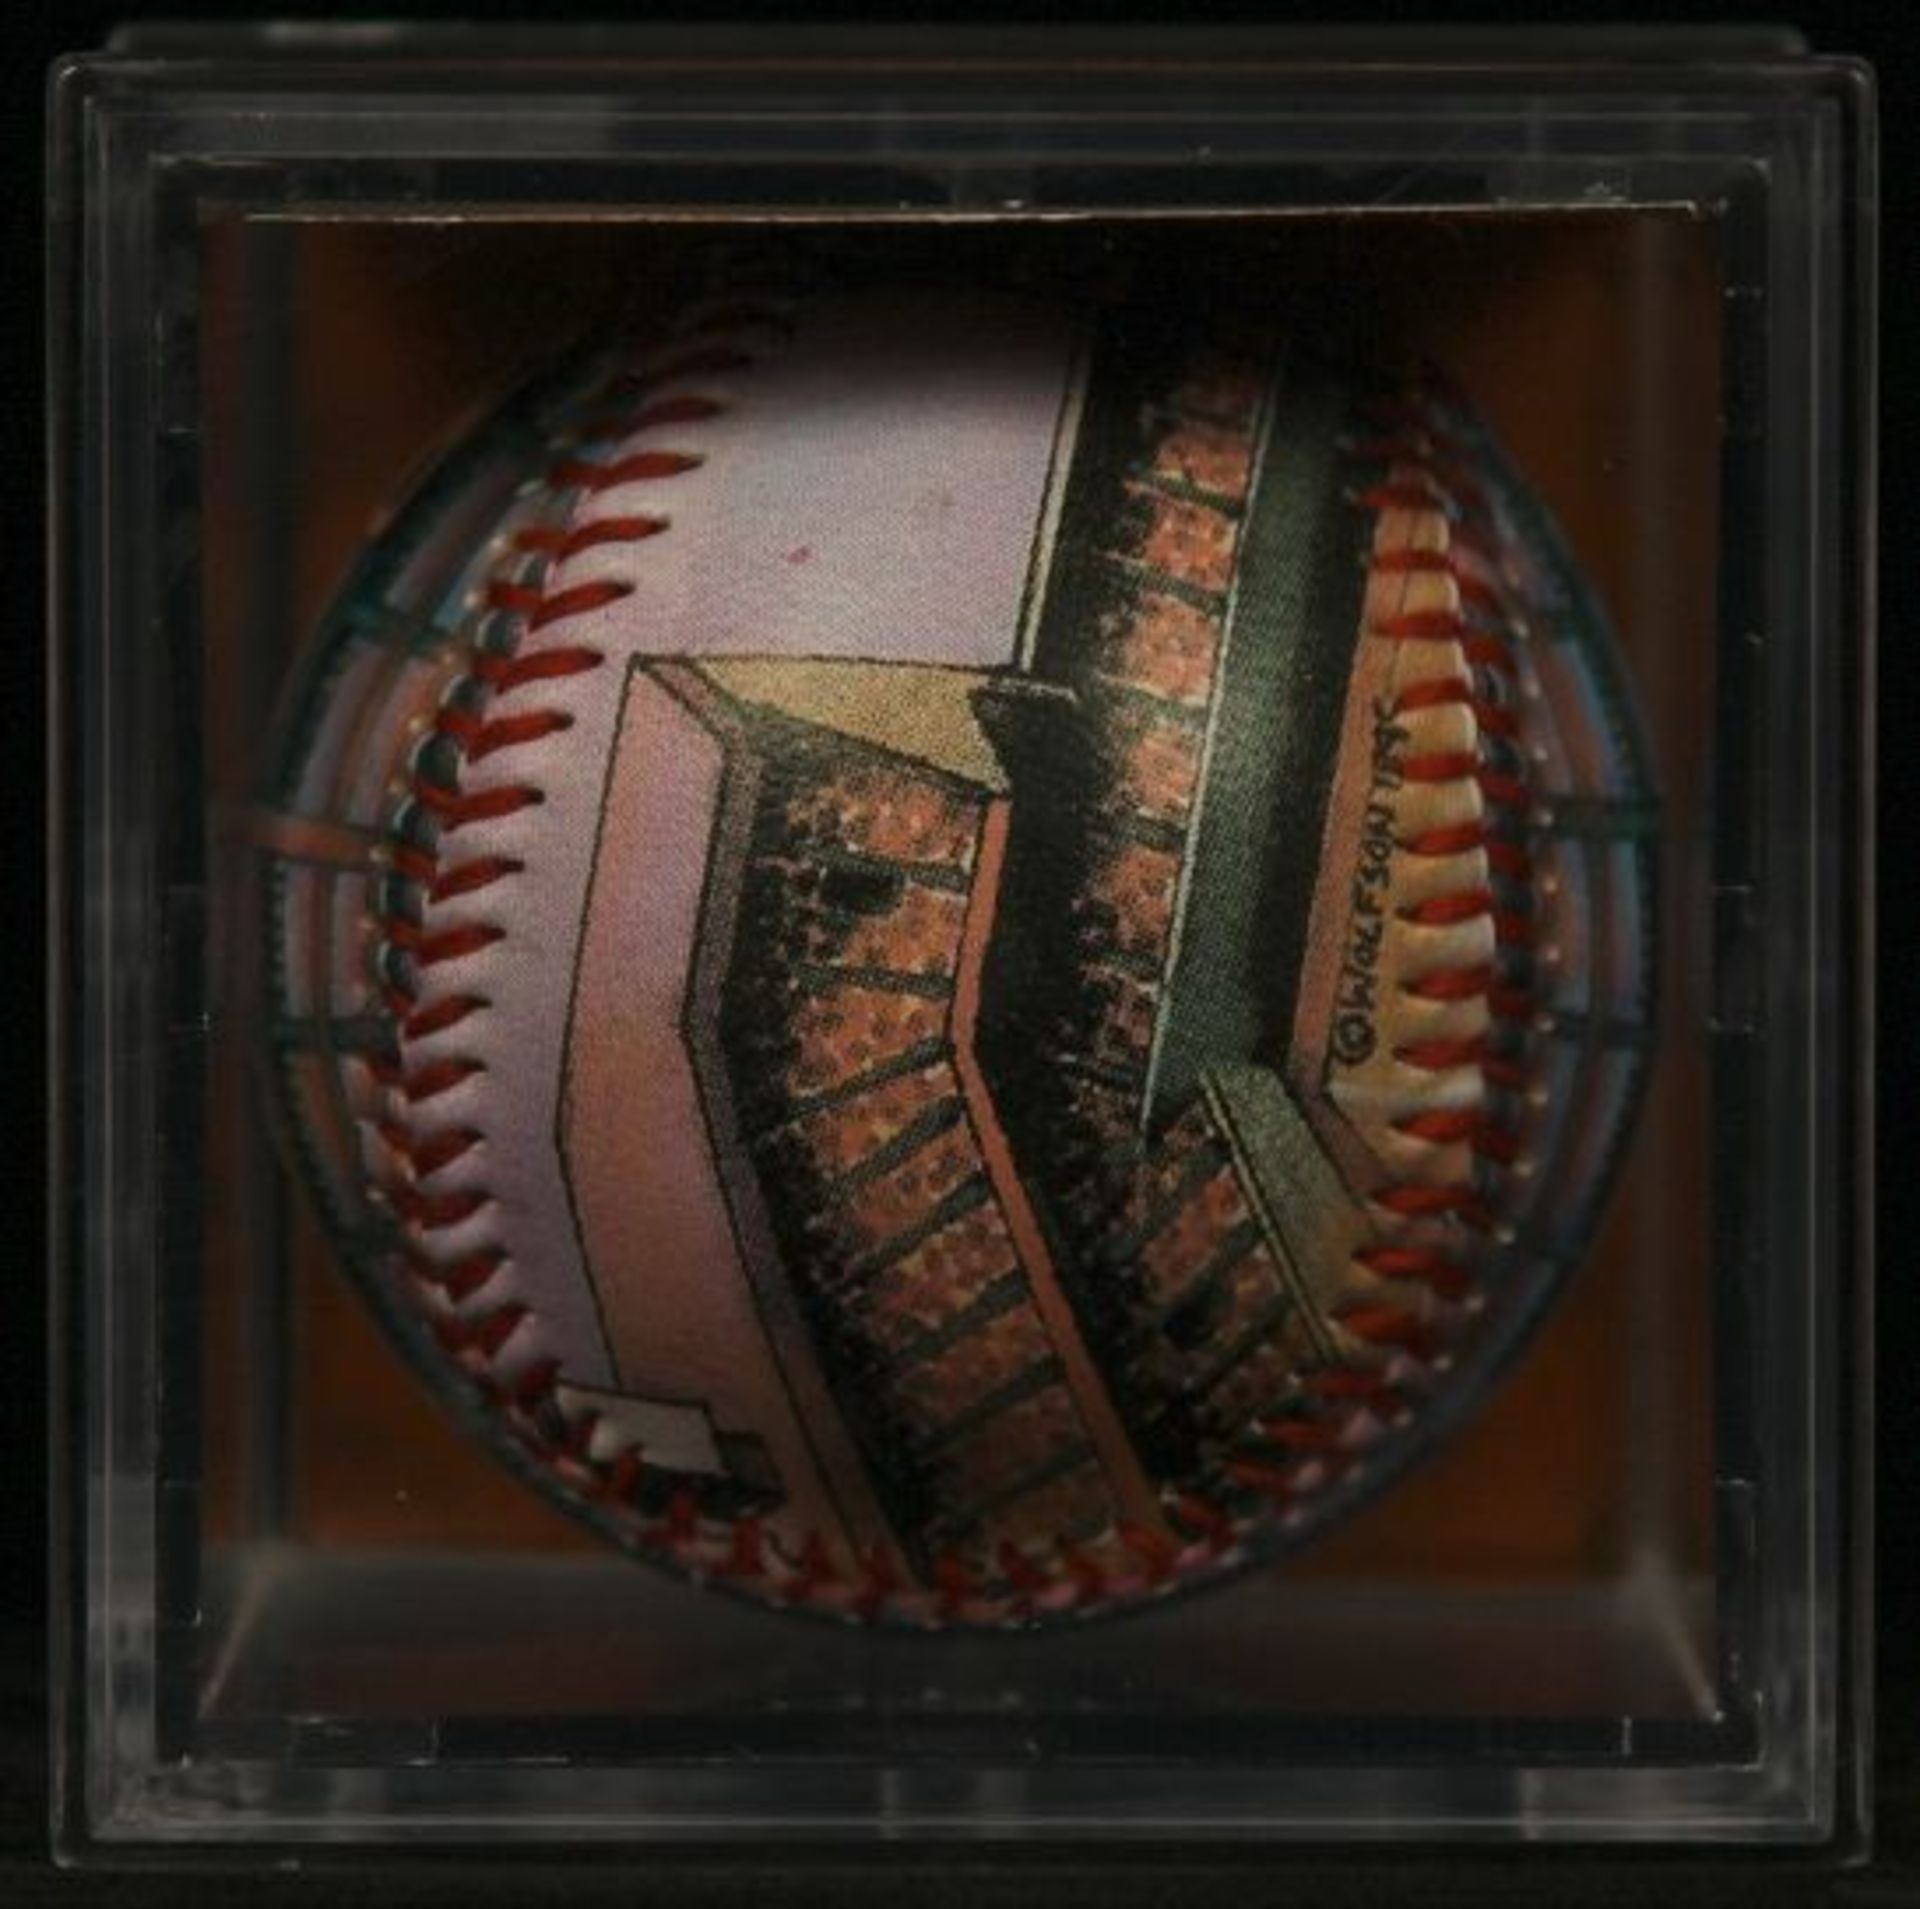 "Unforgettaball! ""Sportsman's Park"" Nostalgia Series Collectable Baseball - Image 4 of 4"